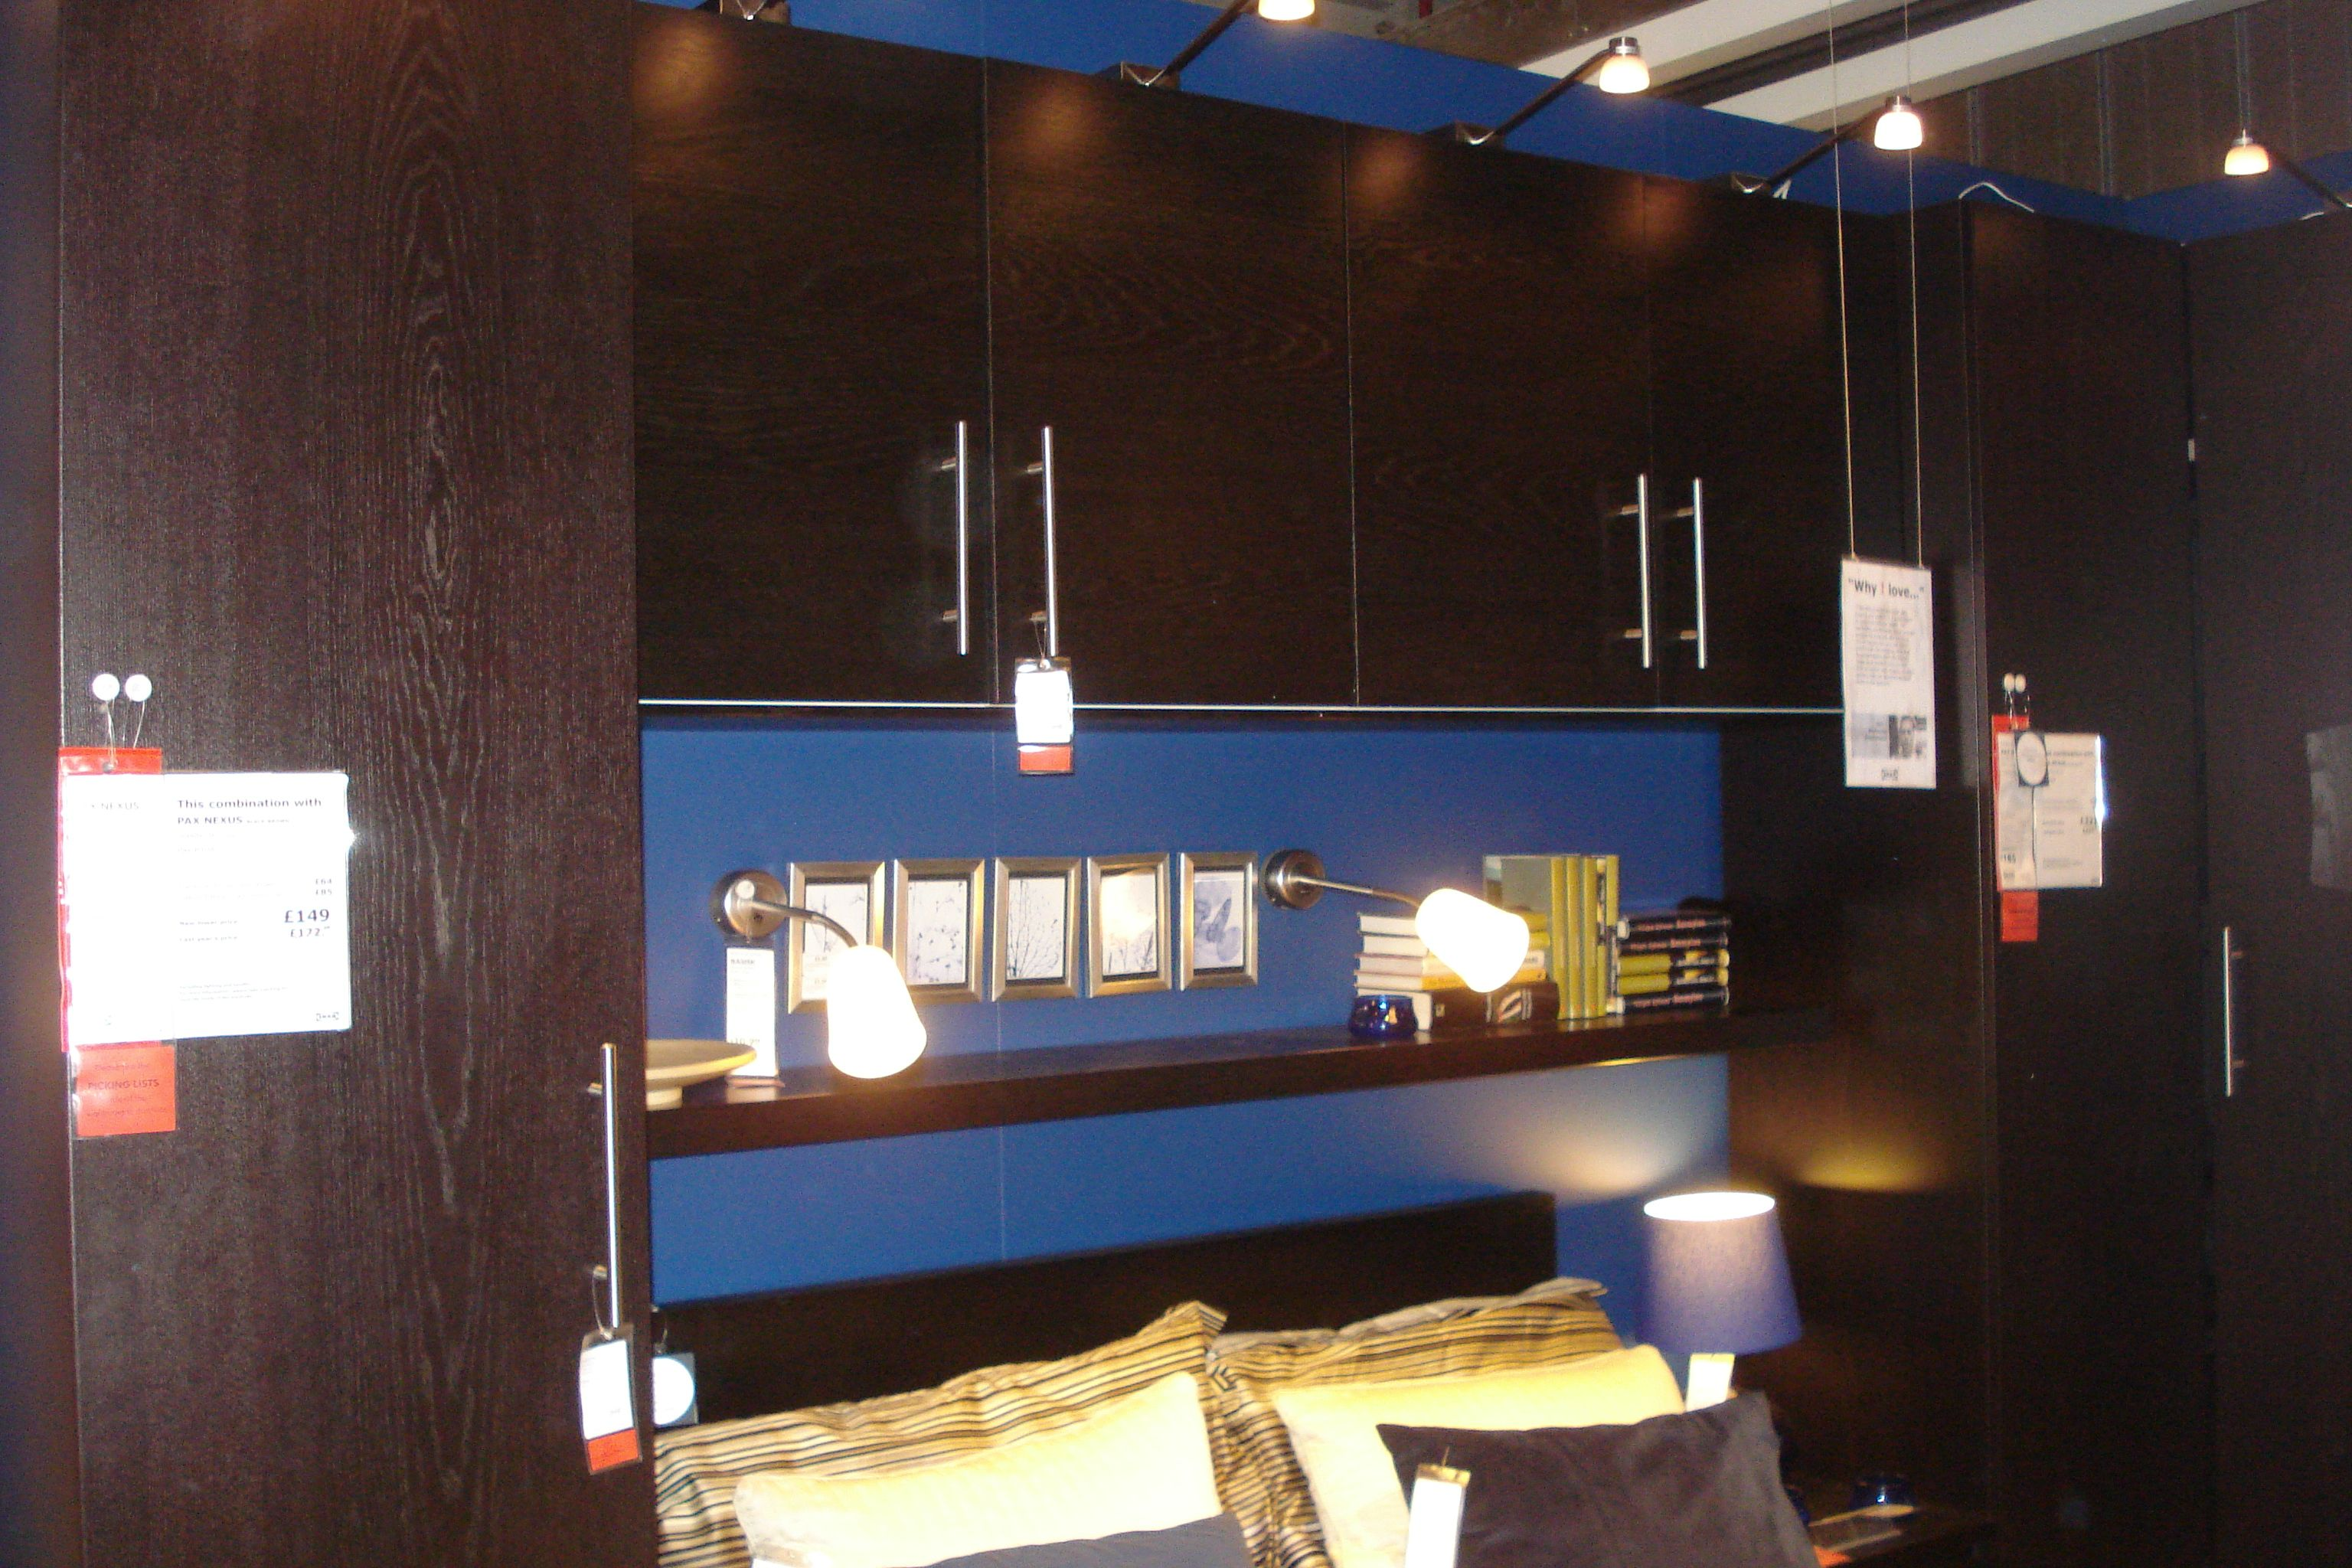 pax wardrobe lighting. Ikea Pax Wardrobes And Kitchen Units In Black Brown Up Over Bed. Wall Wardrobe Lighting 6